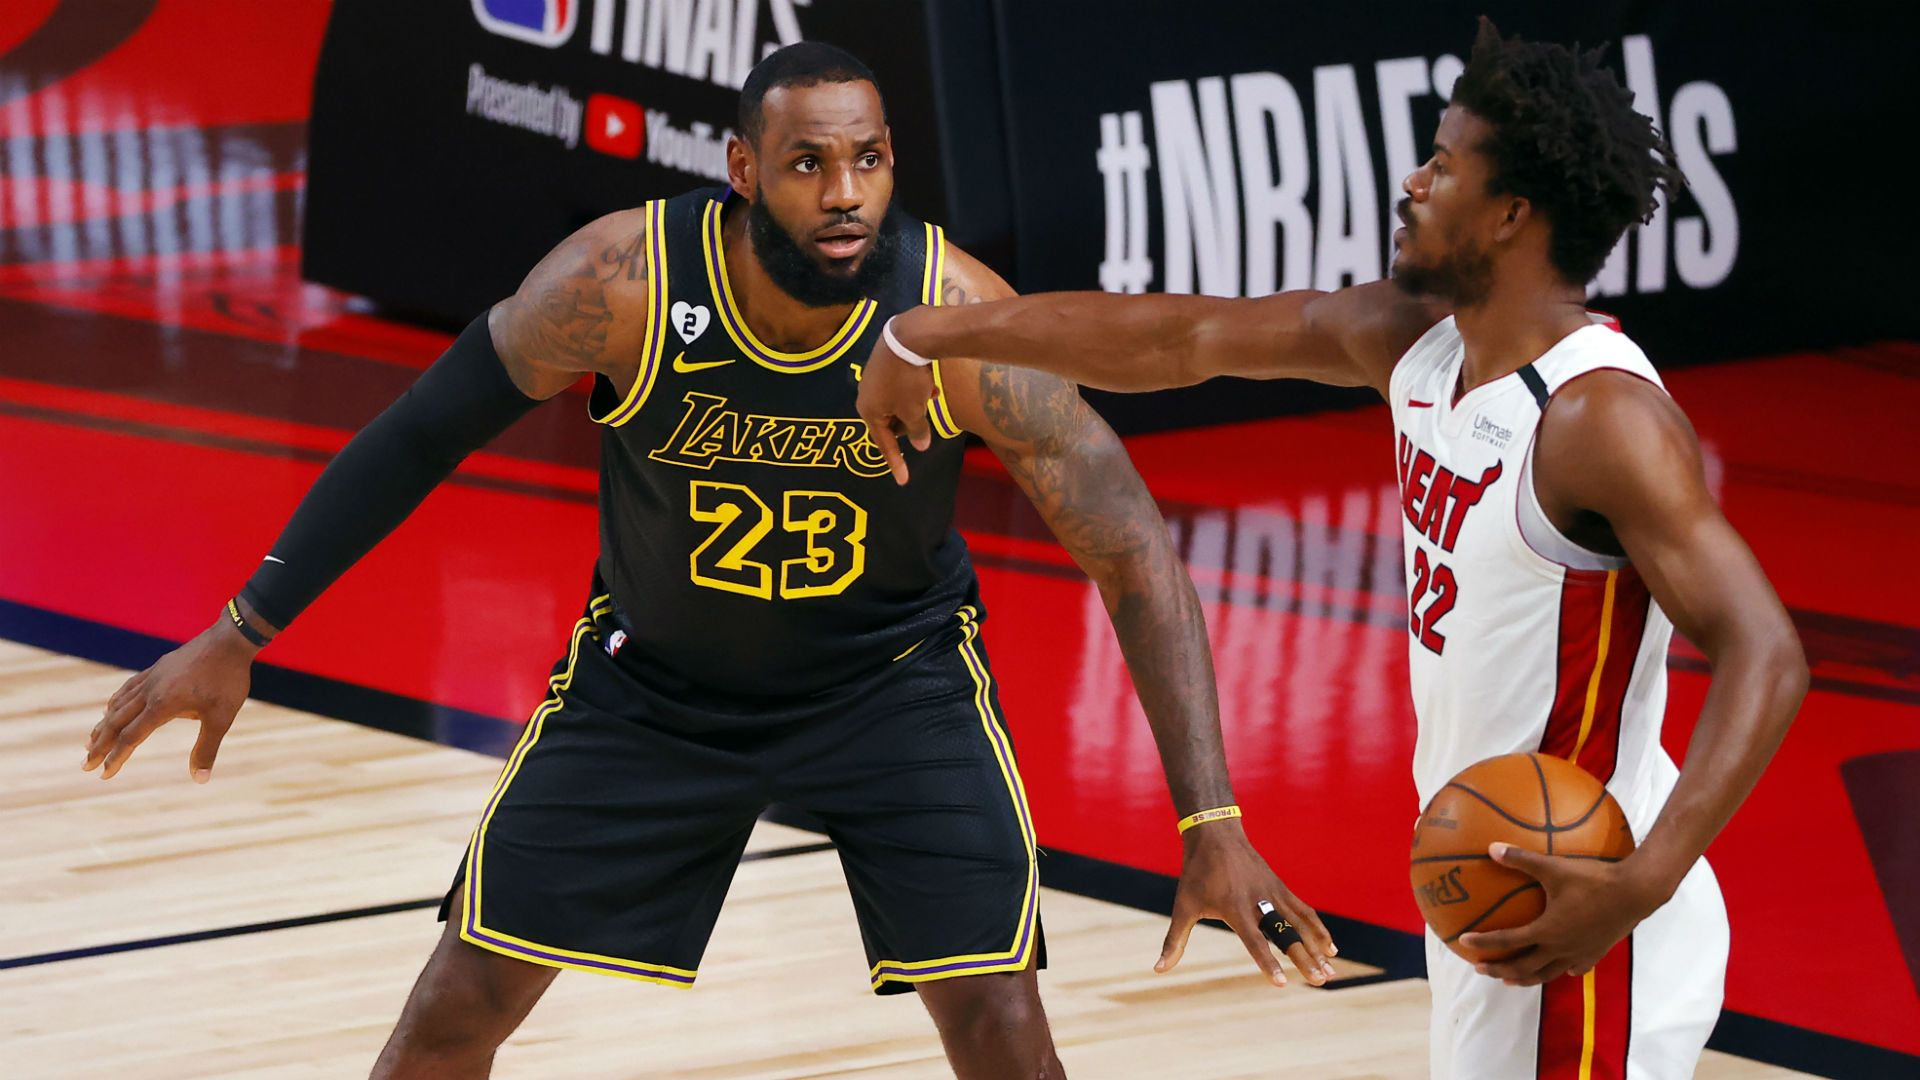 Lakers Vs Heat Live Score Updates Highlights From Game 4 Of The 2020 Nba Finals En 2020 Nba